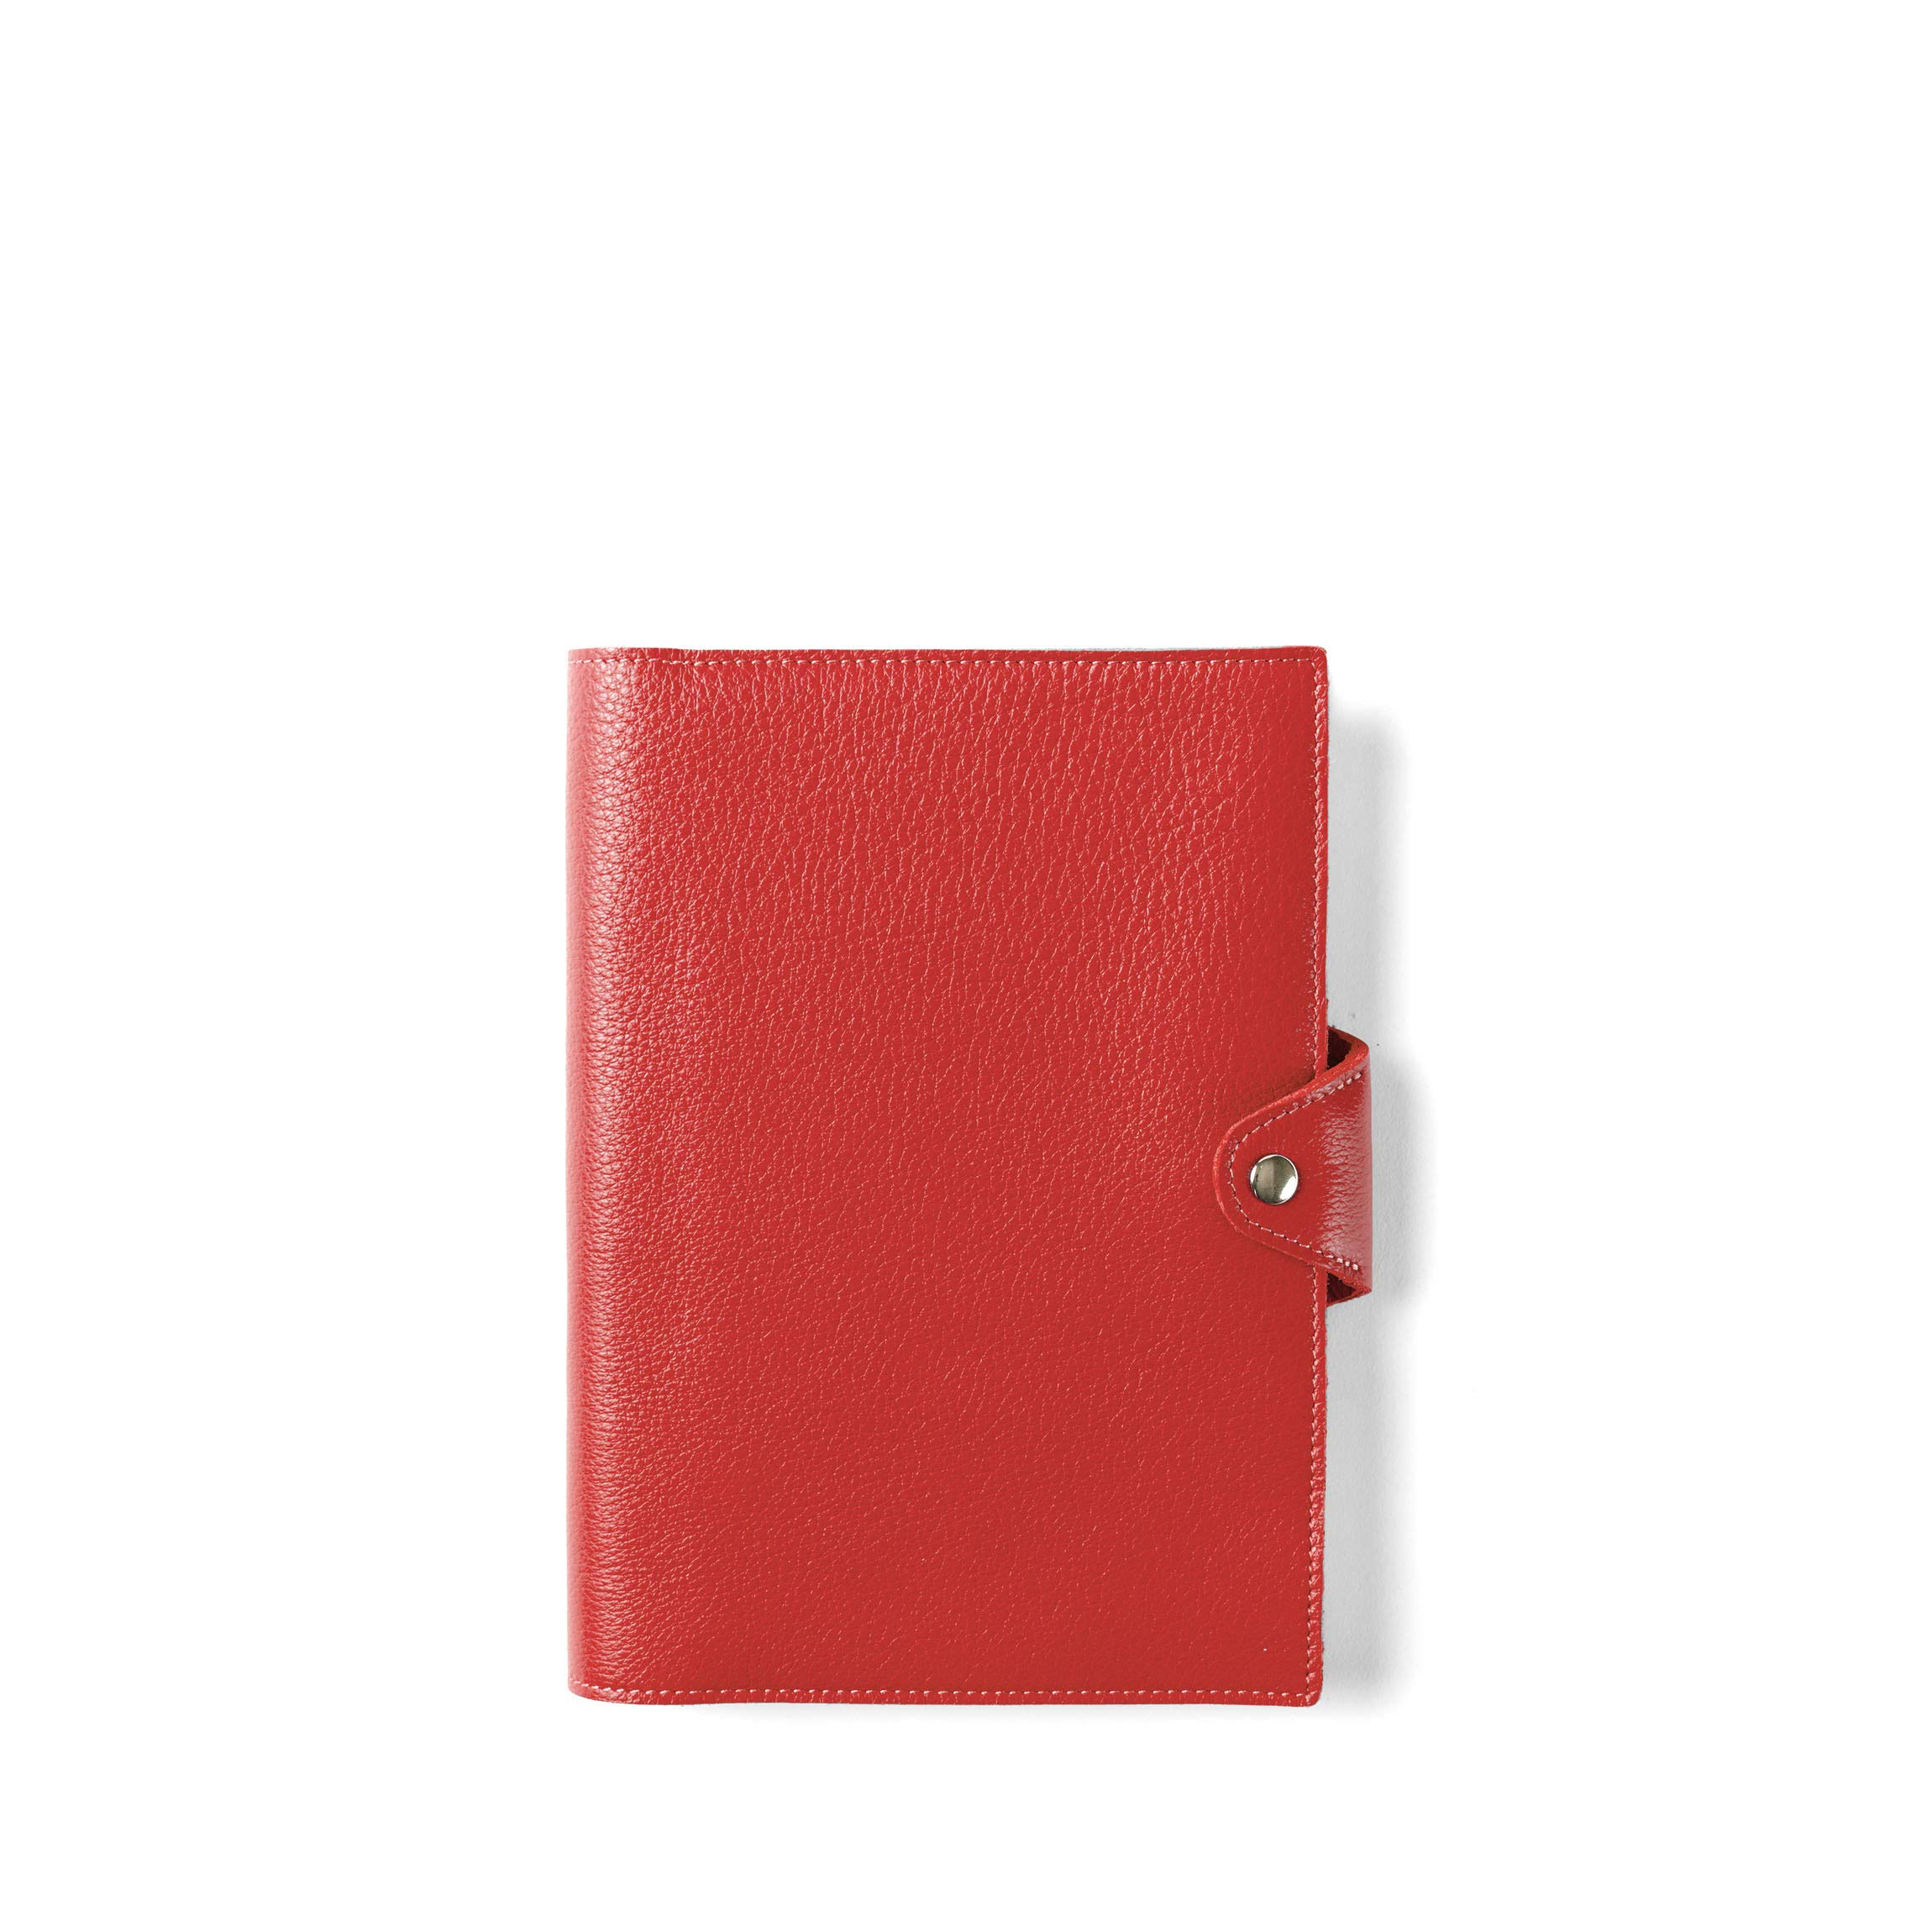 Spiral Snap Journal with Pen Loop - Full Grain Leather Leather - Scarlet (Red)